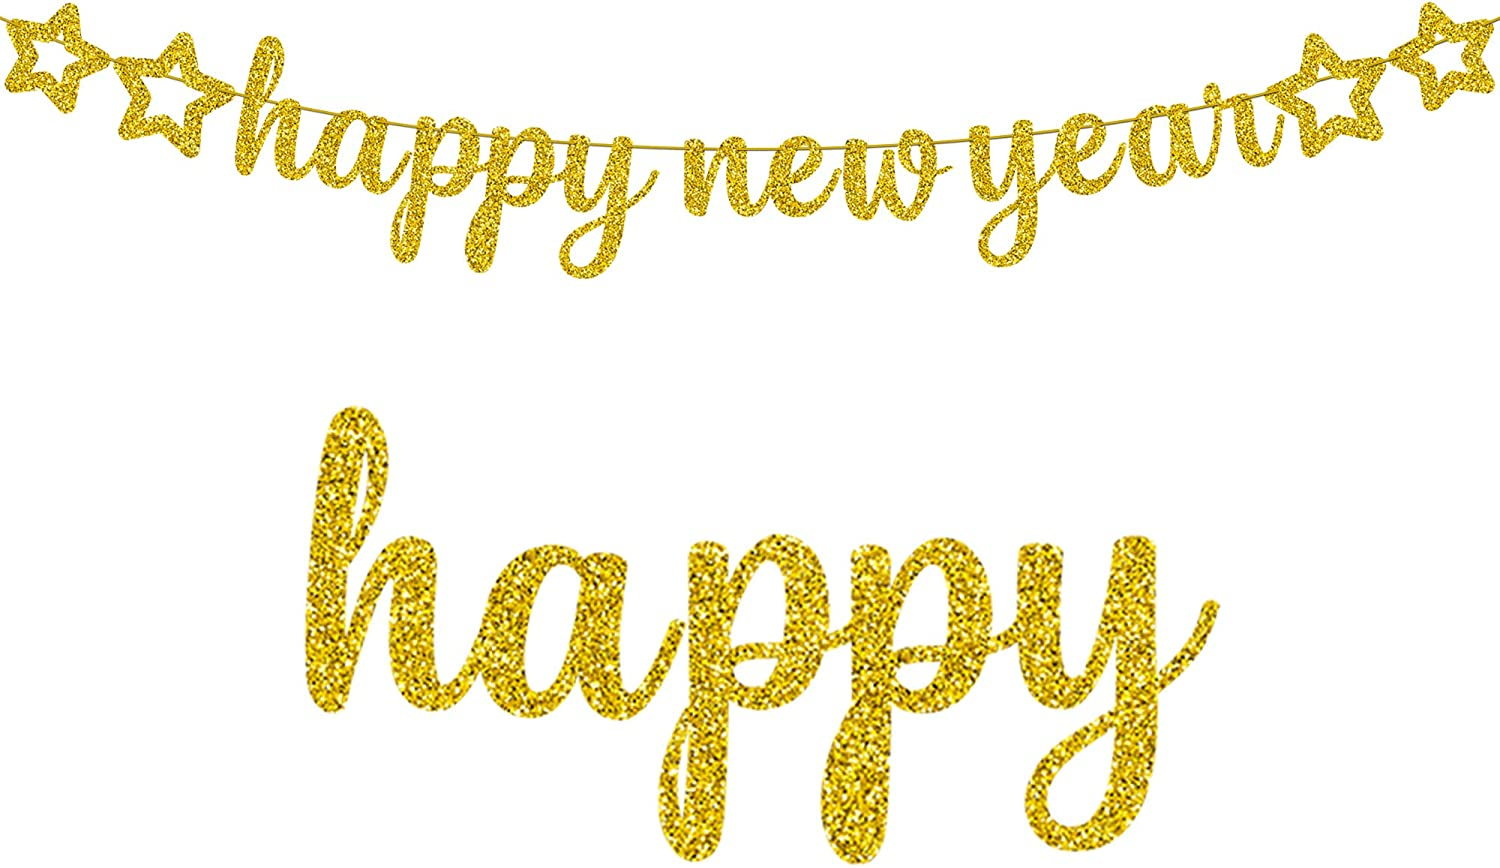 Happy New Year Banner for New Years Decorations - Gold Glitter  